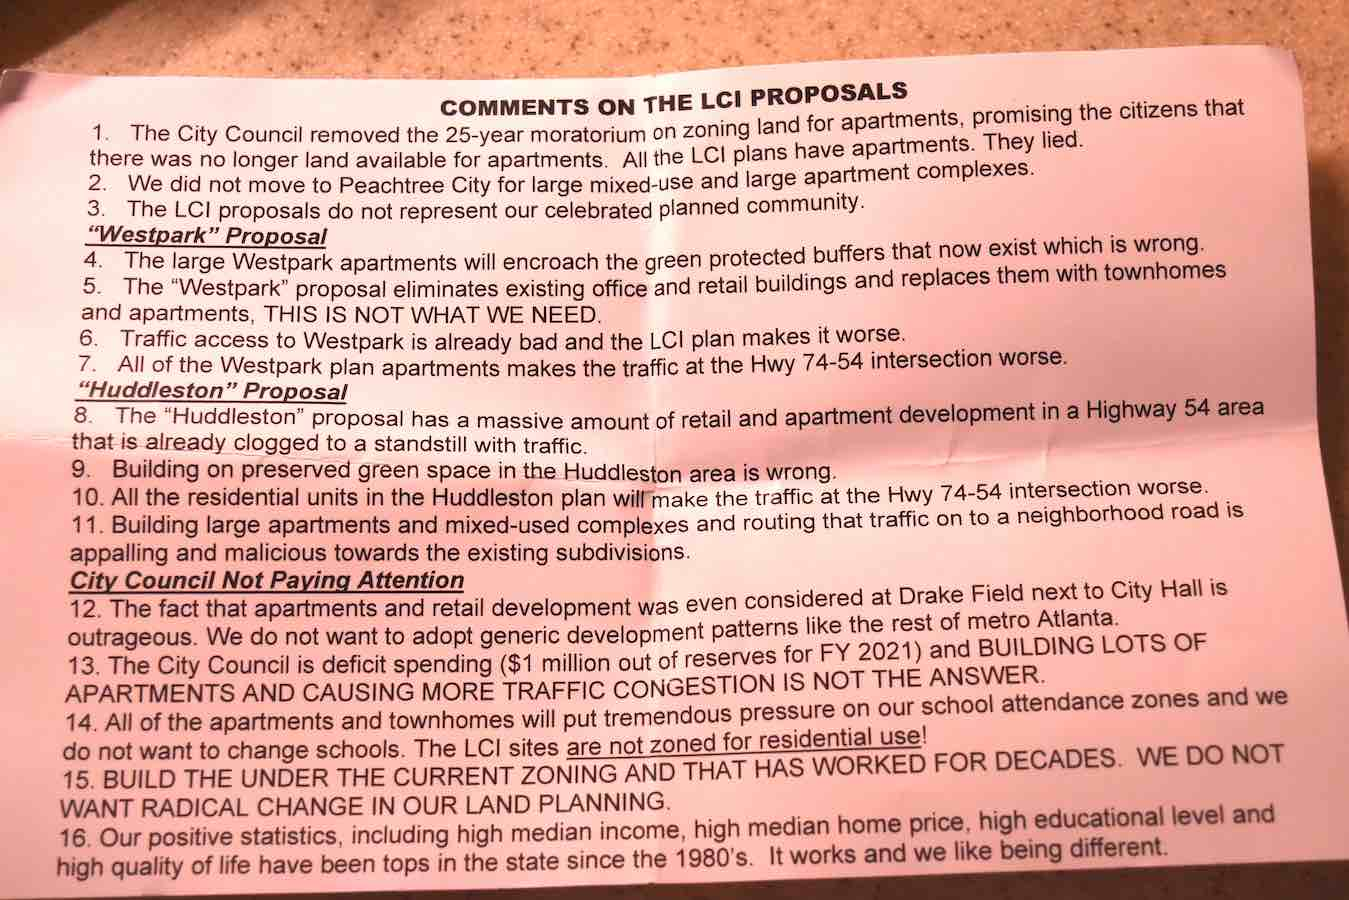 <b>Opposition handout criticizing City Council for the LCI planning results.</b>